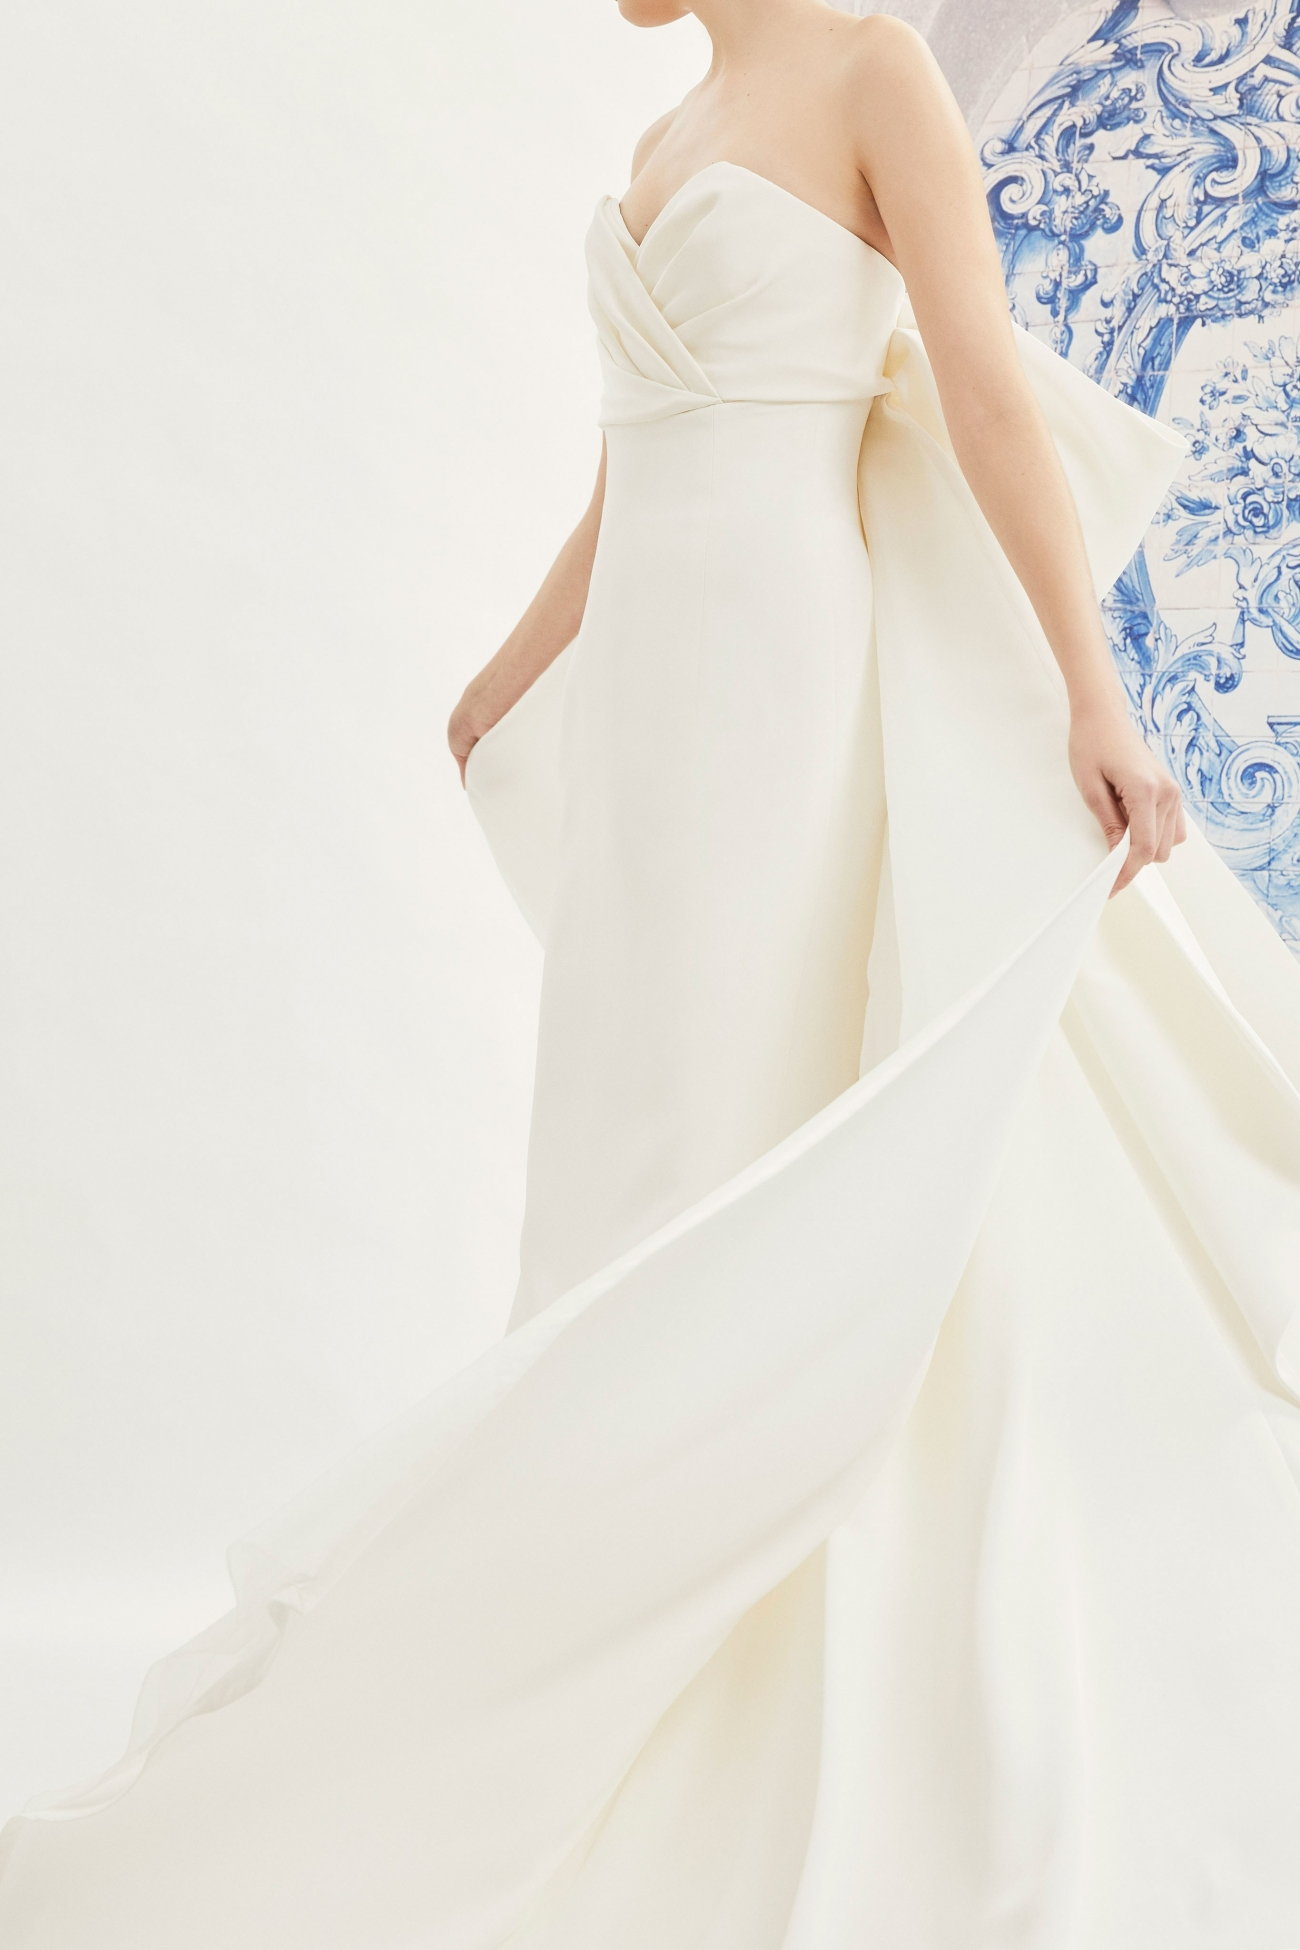 Carolina Herrera Bridal Fall 2019 Indira